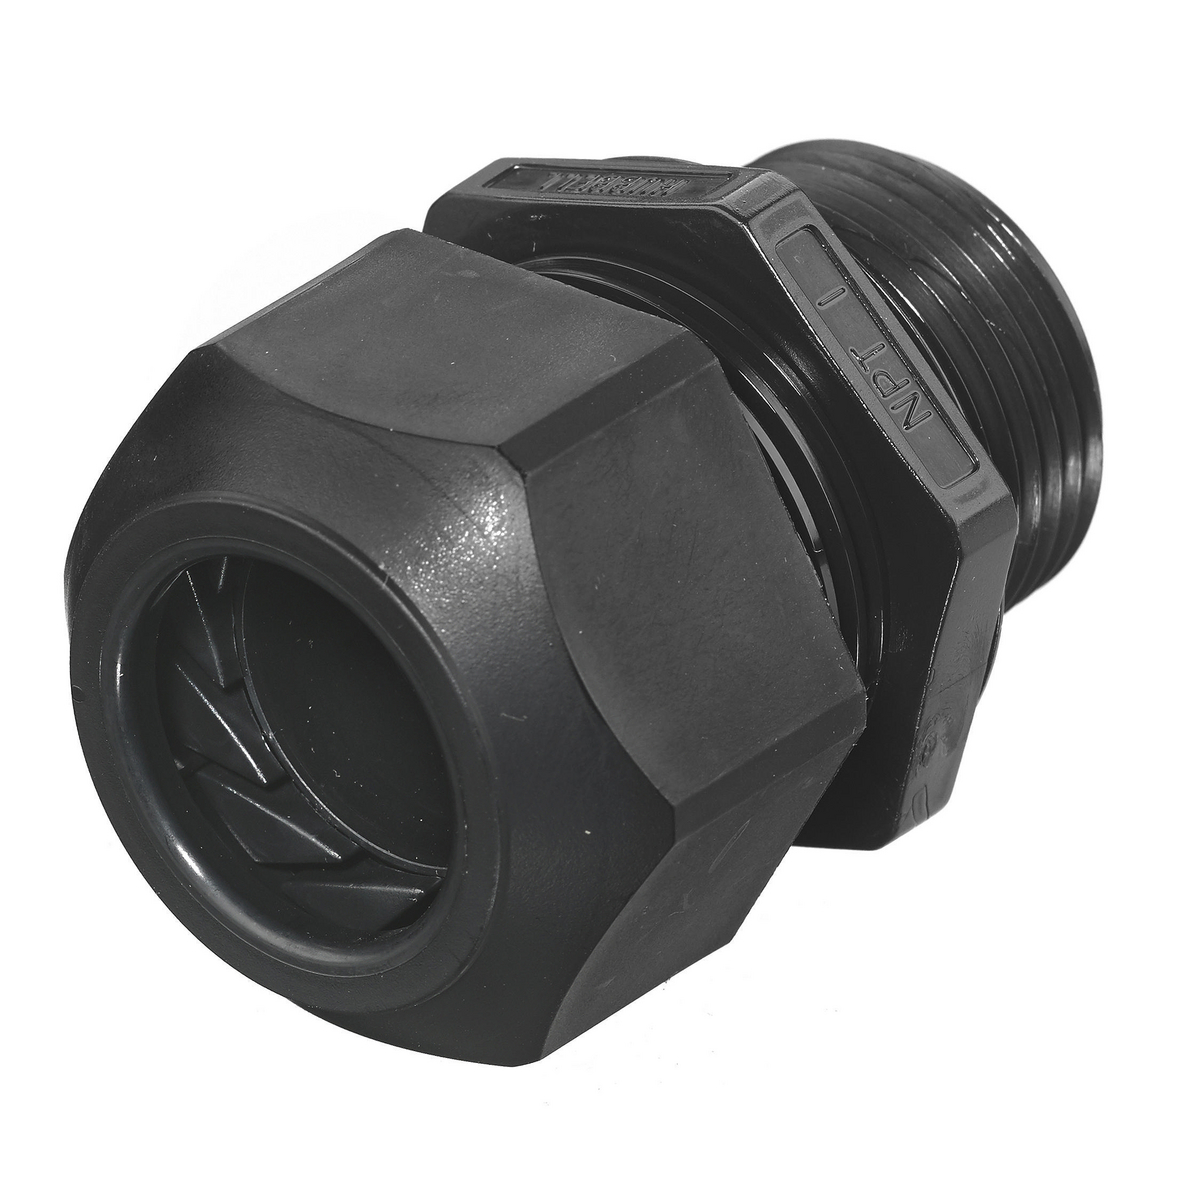 Hubbell SEC100BA 1 Inch Threaded 0.59 to 1 Inch Black Non-Metallic Low Profile Cord Connector